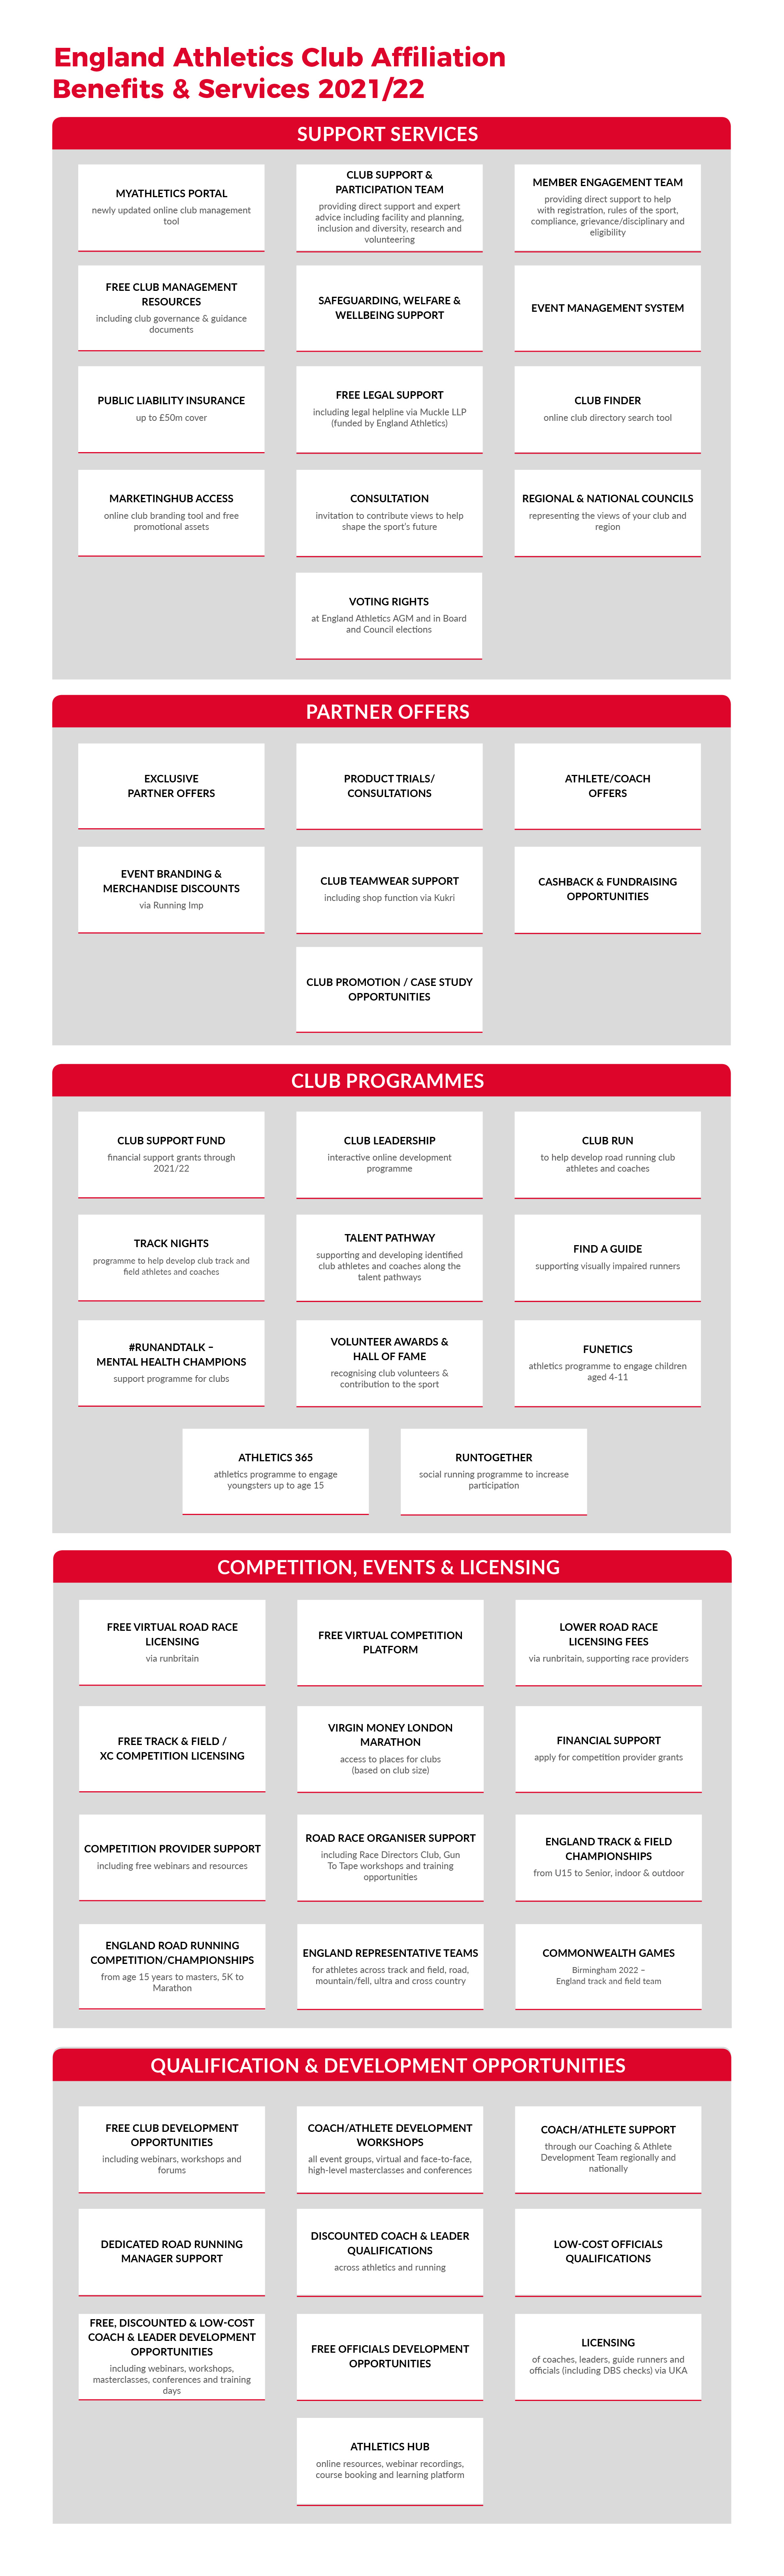 England Athletics Club Affiliation benefits and services chart 2021